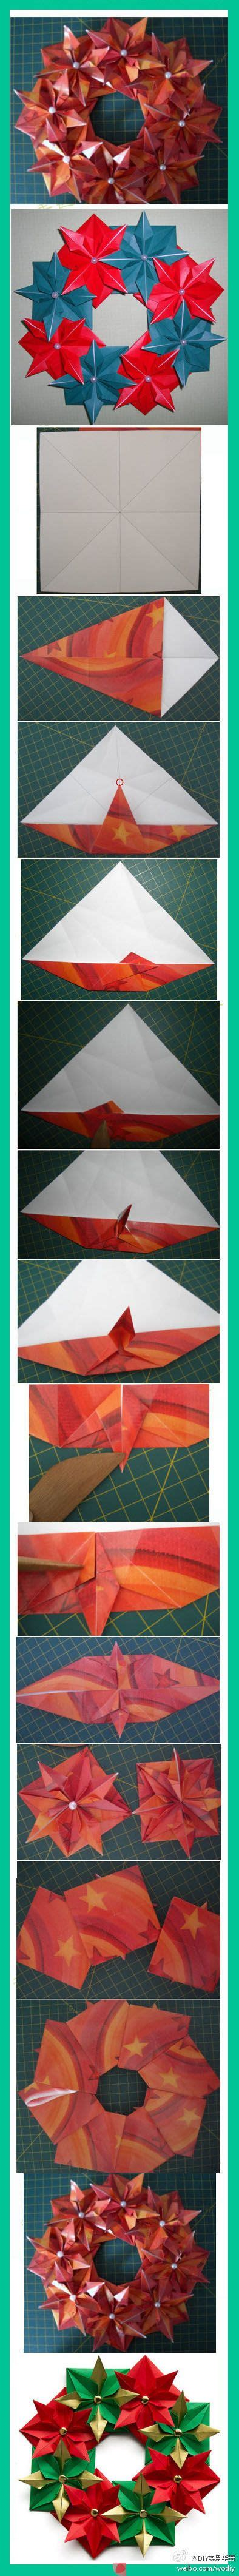 new year zodiac wreath 38 best images about paper origami on